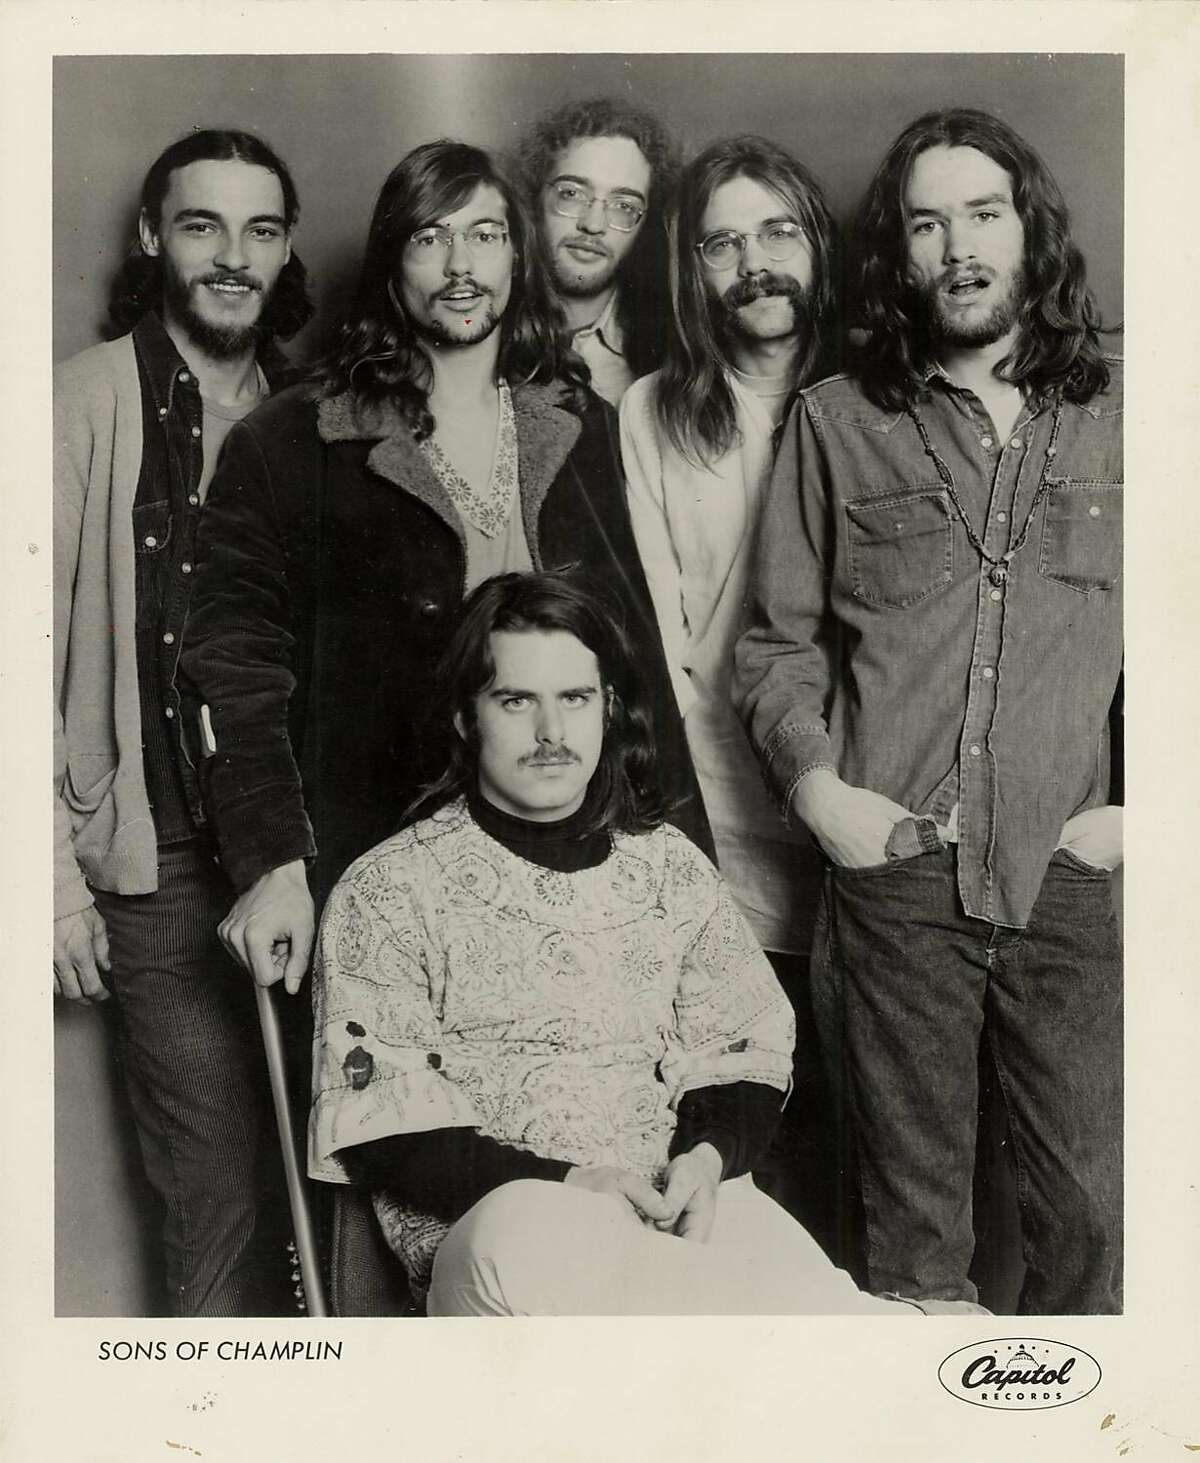 The Sons of Champlin.